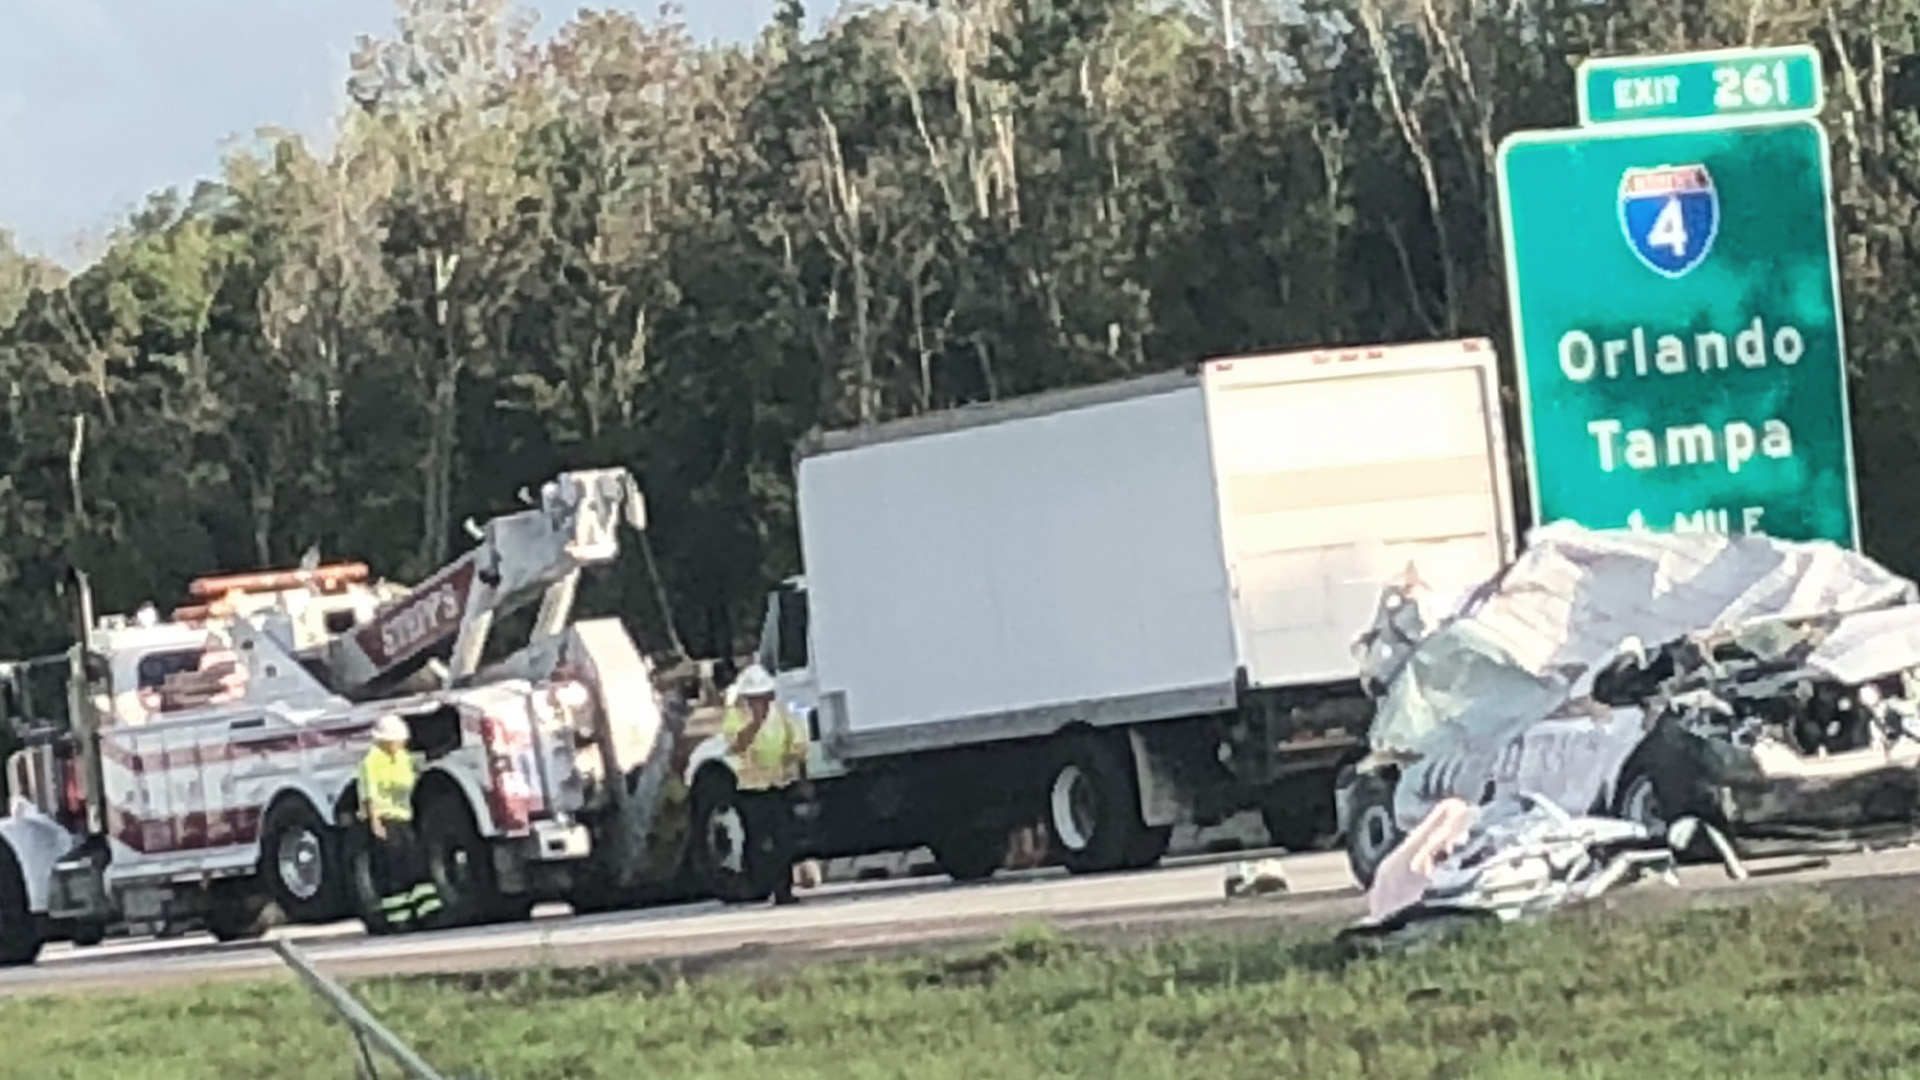 Crash shuts down I-75 southbound for hours, at least 1 dead | WFLA